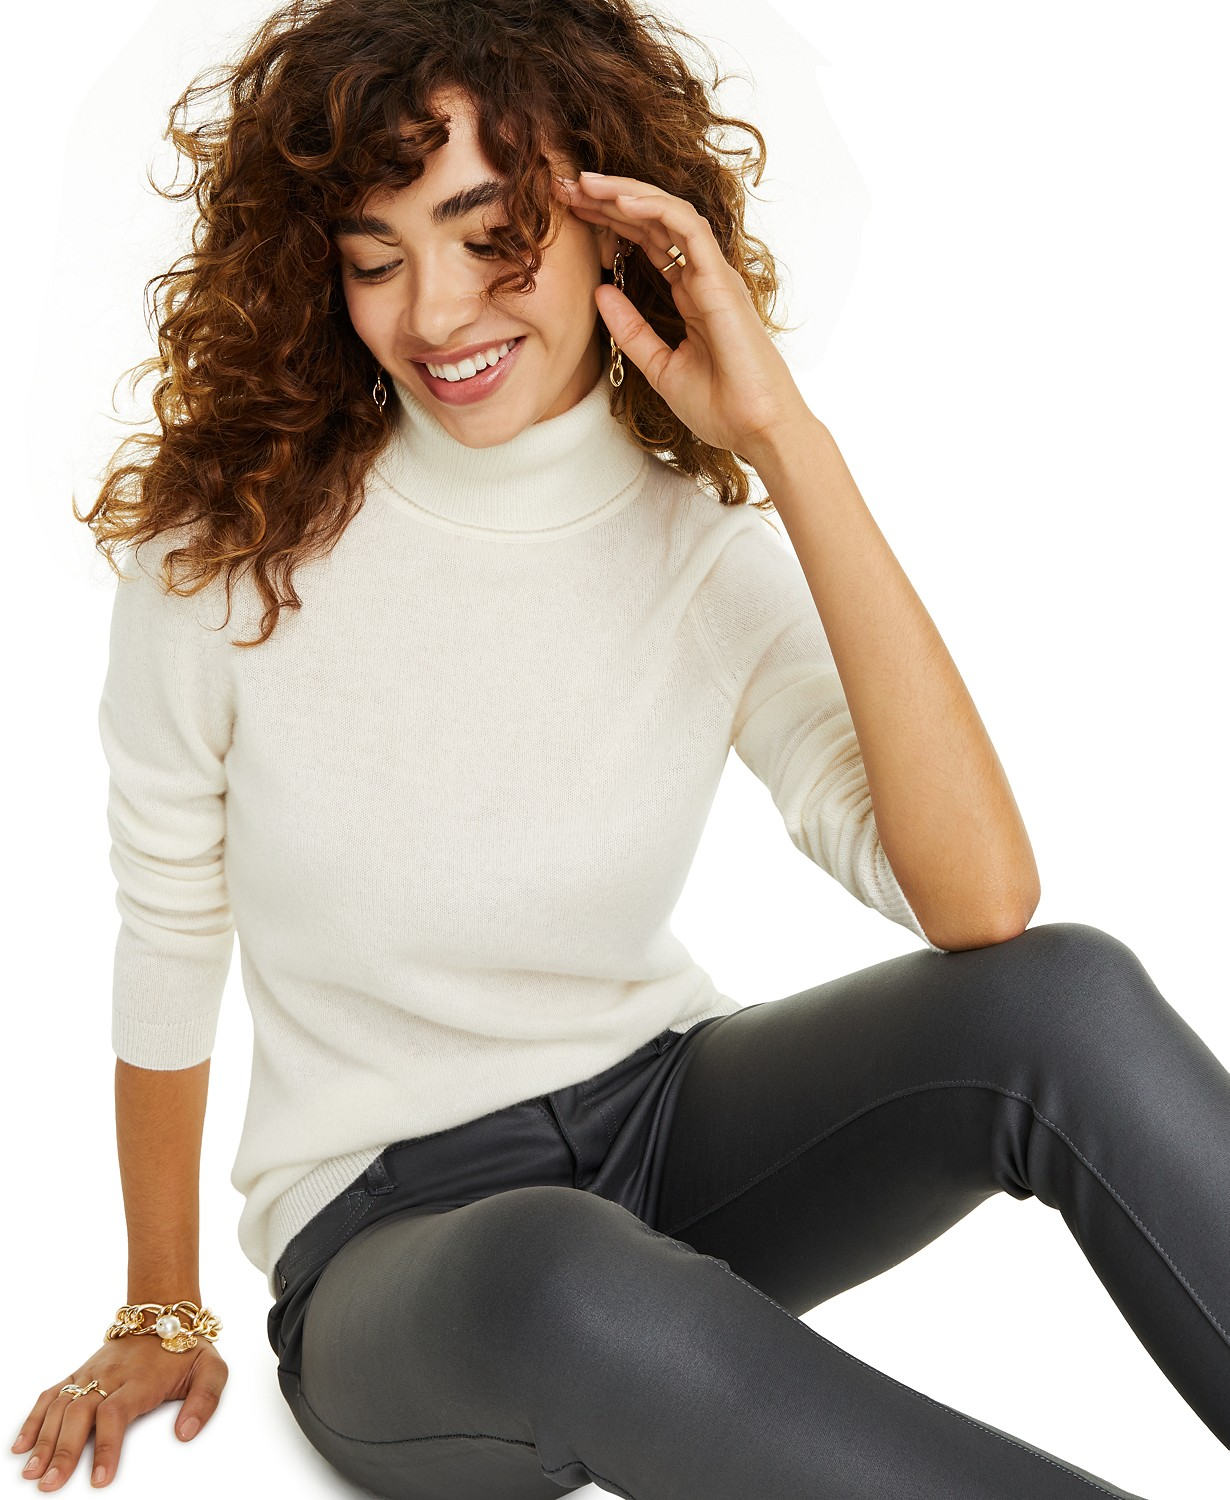 Macy's: Charter Club Petite Cashmere Turtleneck Sweater for $55.60 (Reg. Price $139.00)